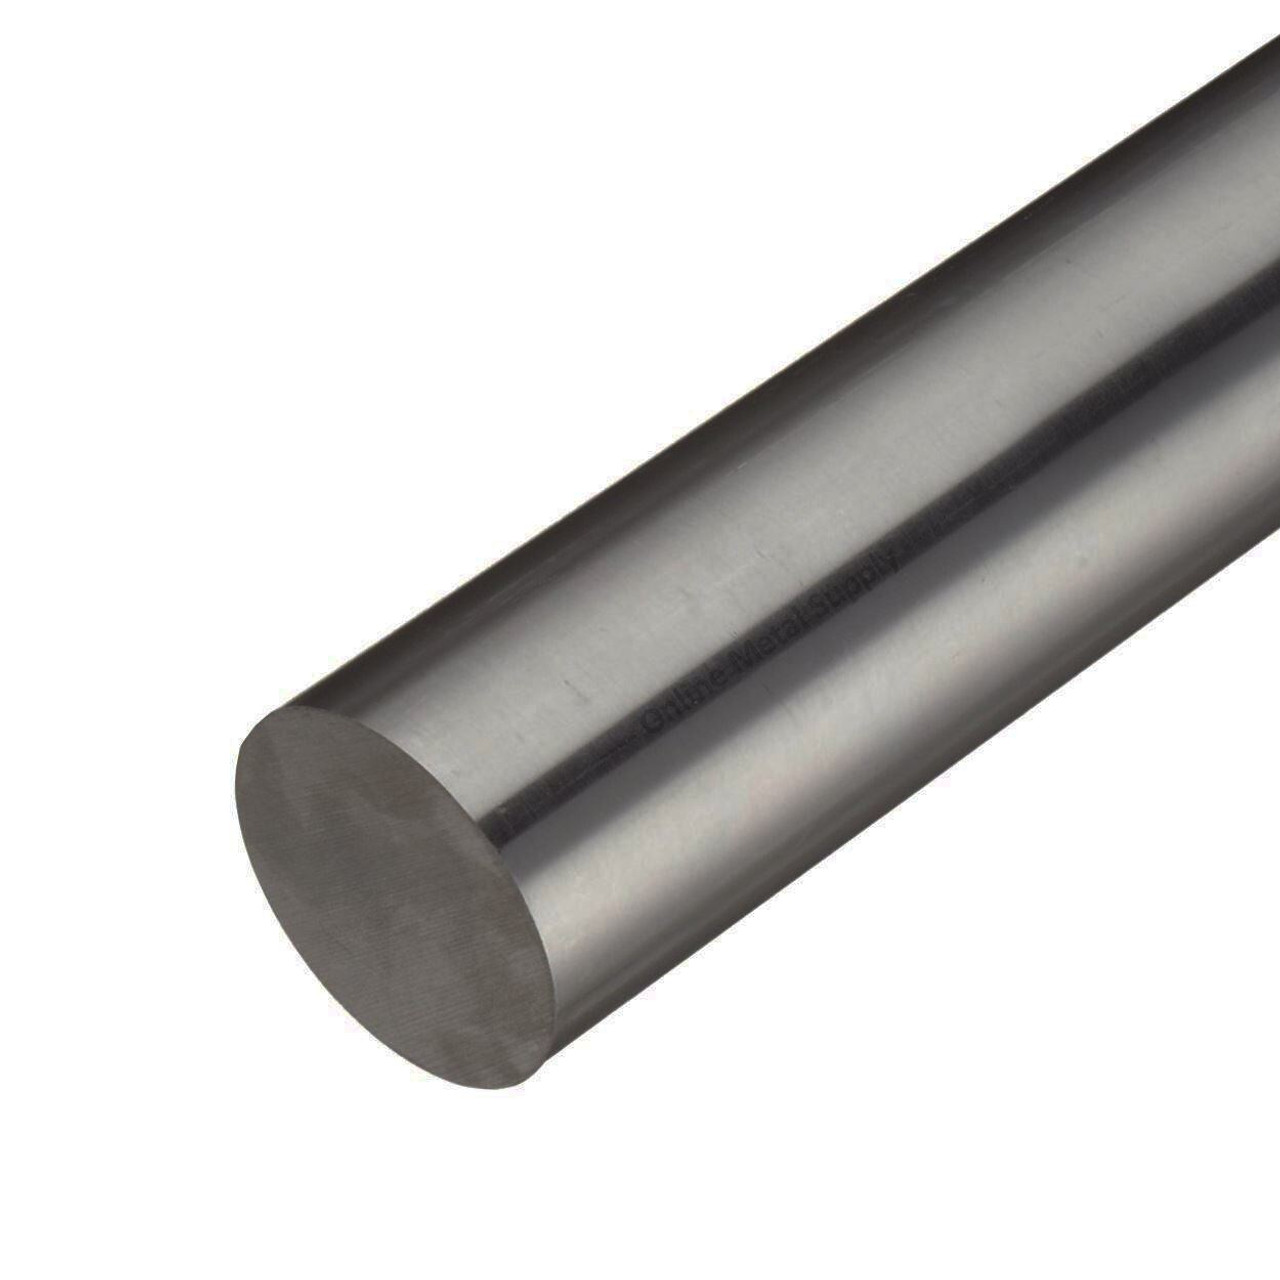 "361 Molybdenum Round Rod, 1.25"" x 2.625"" long"